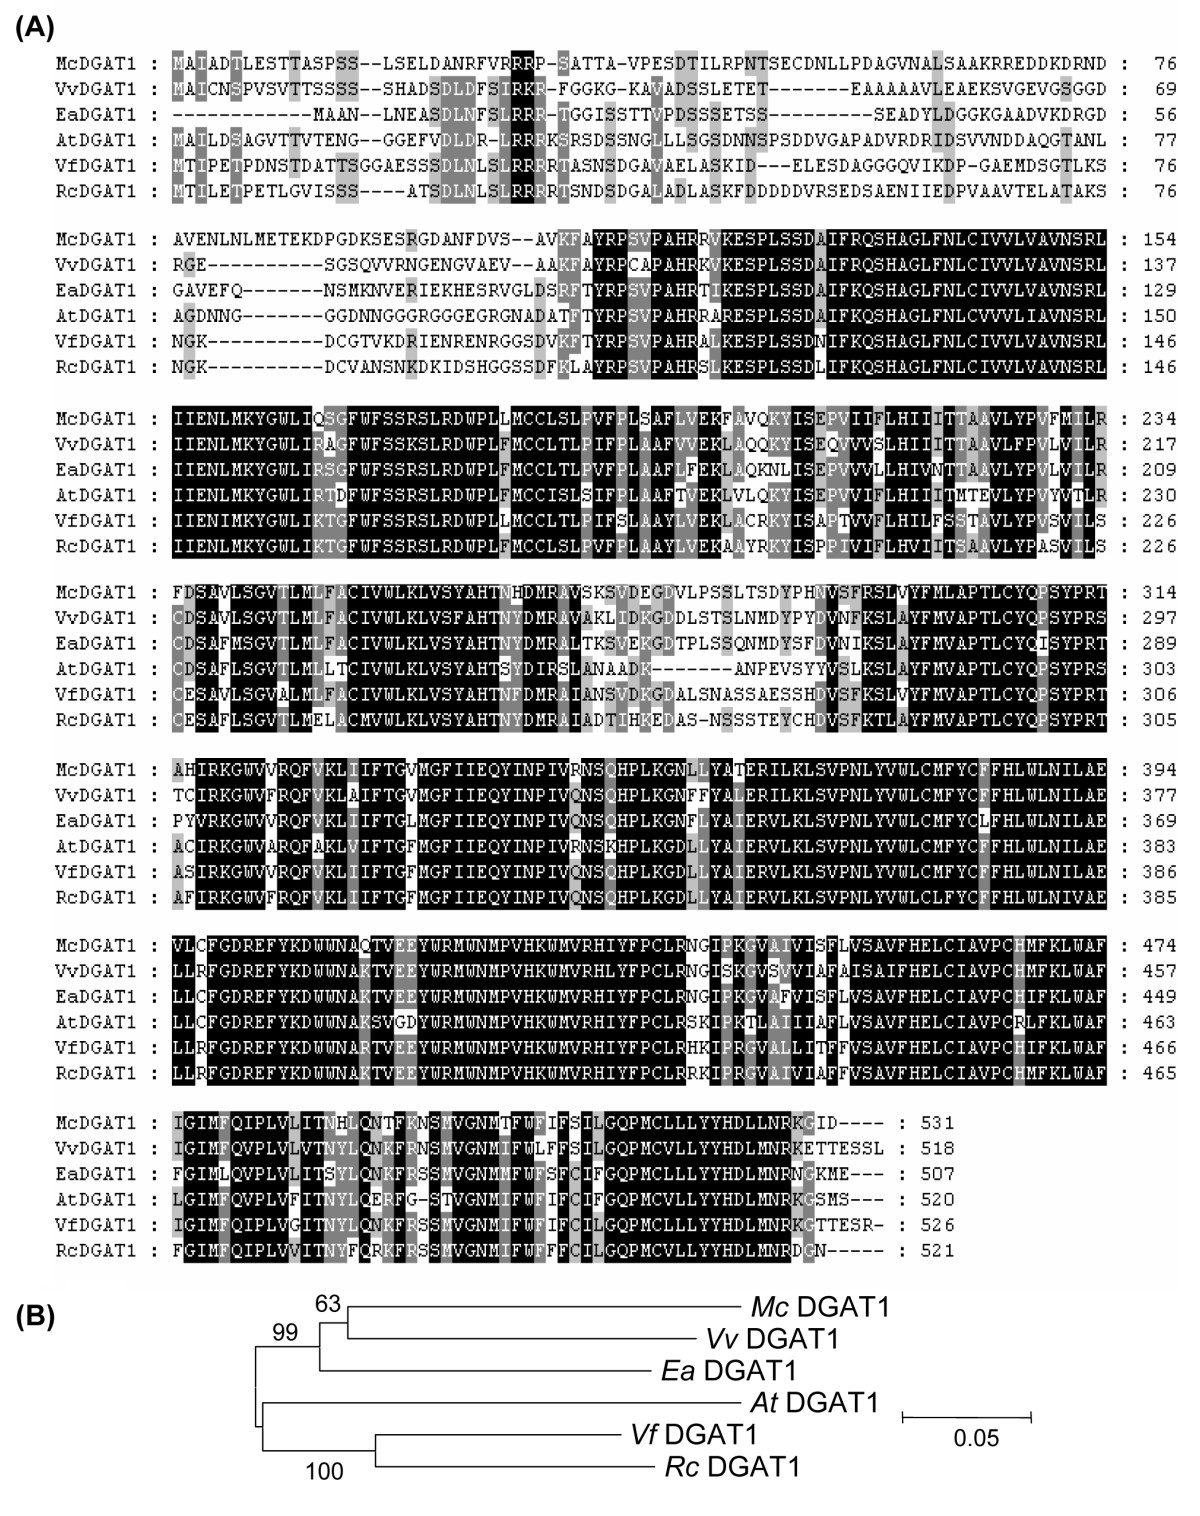 https://static-content.springer.com/image/art%3A10.1186%2F1471-2229-10-250/MediaObjects/12870_2010_Article_744_Fig7_HTML.jpg